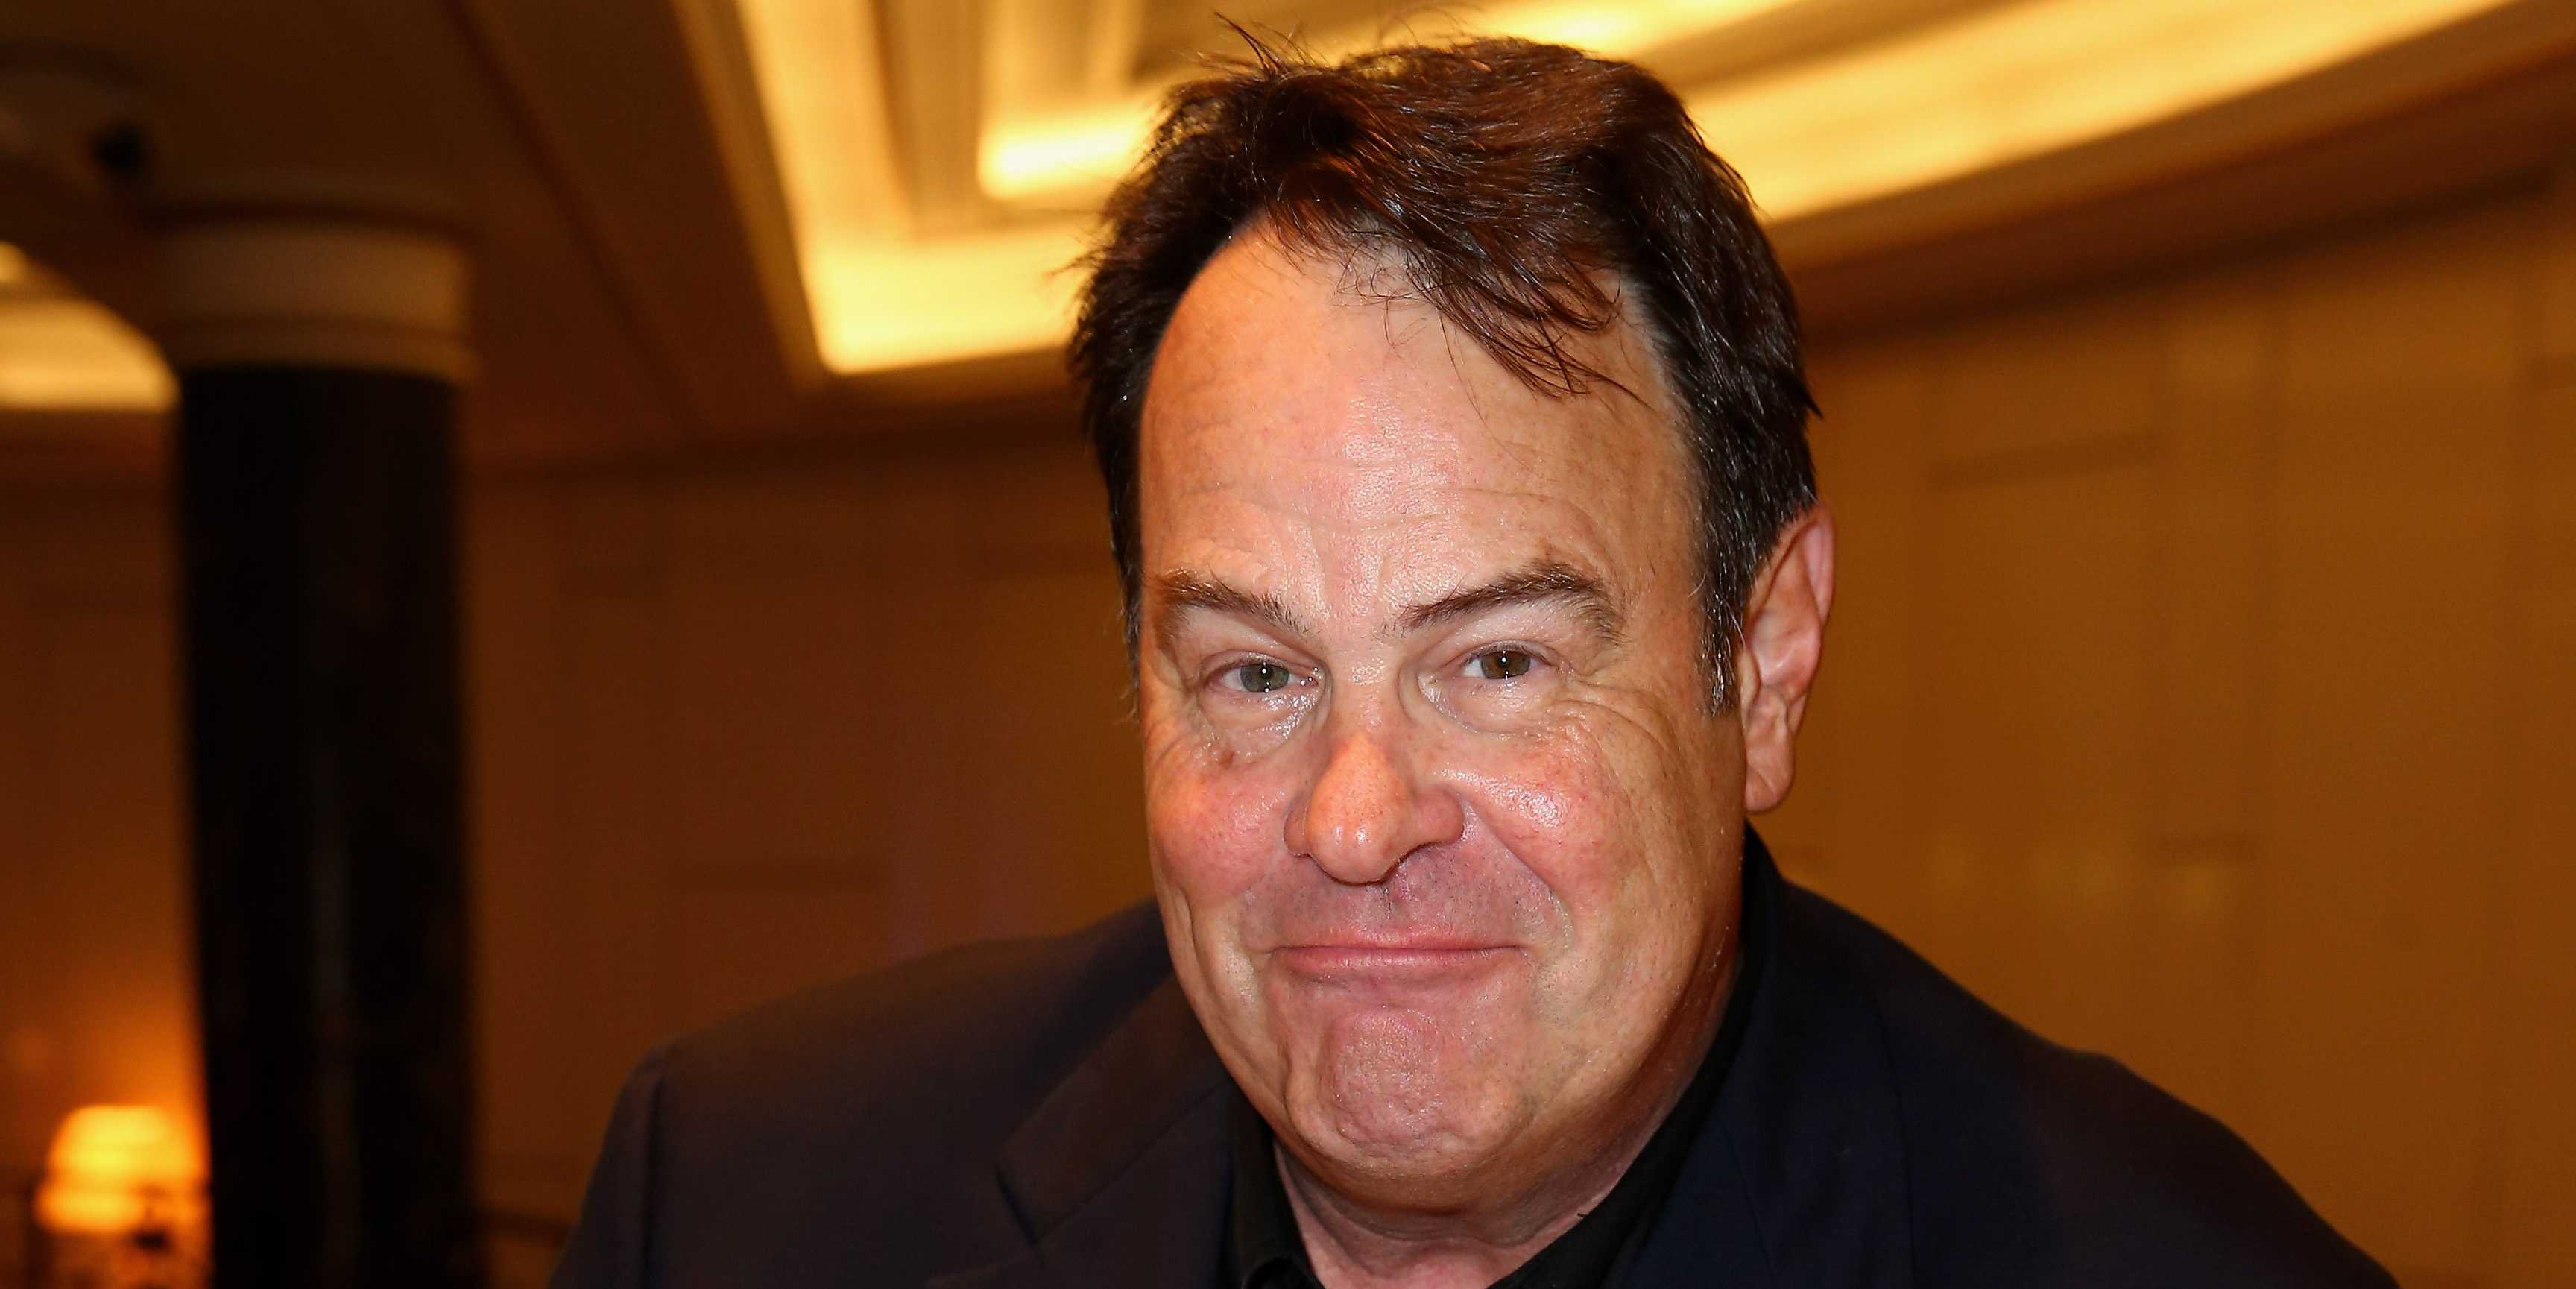 Dan Aykroyd Hd Wallpaper